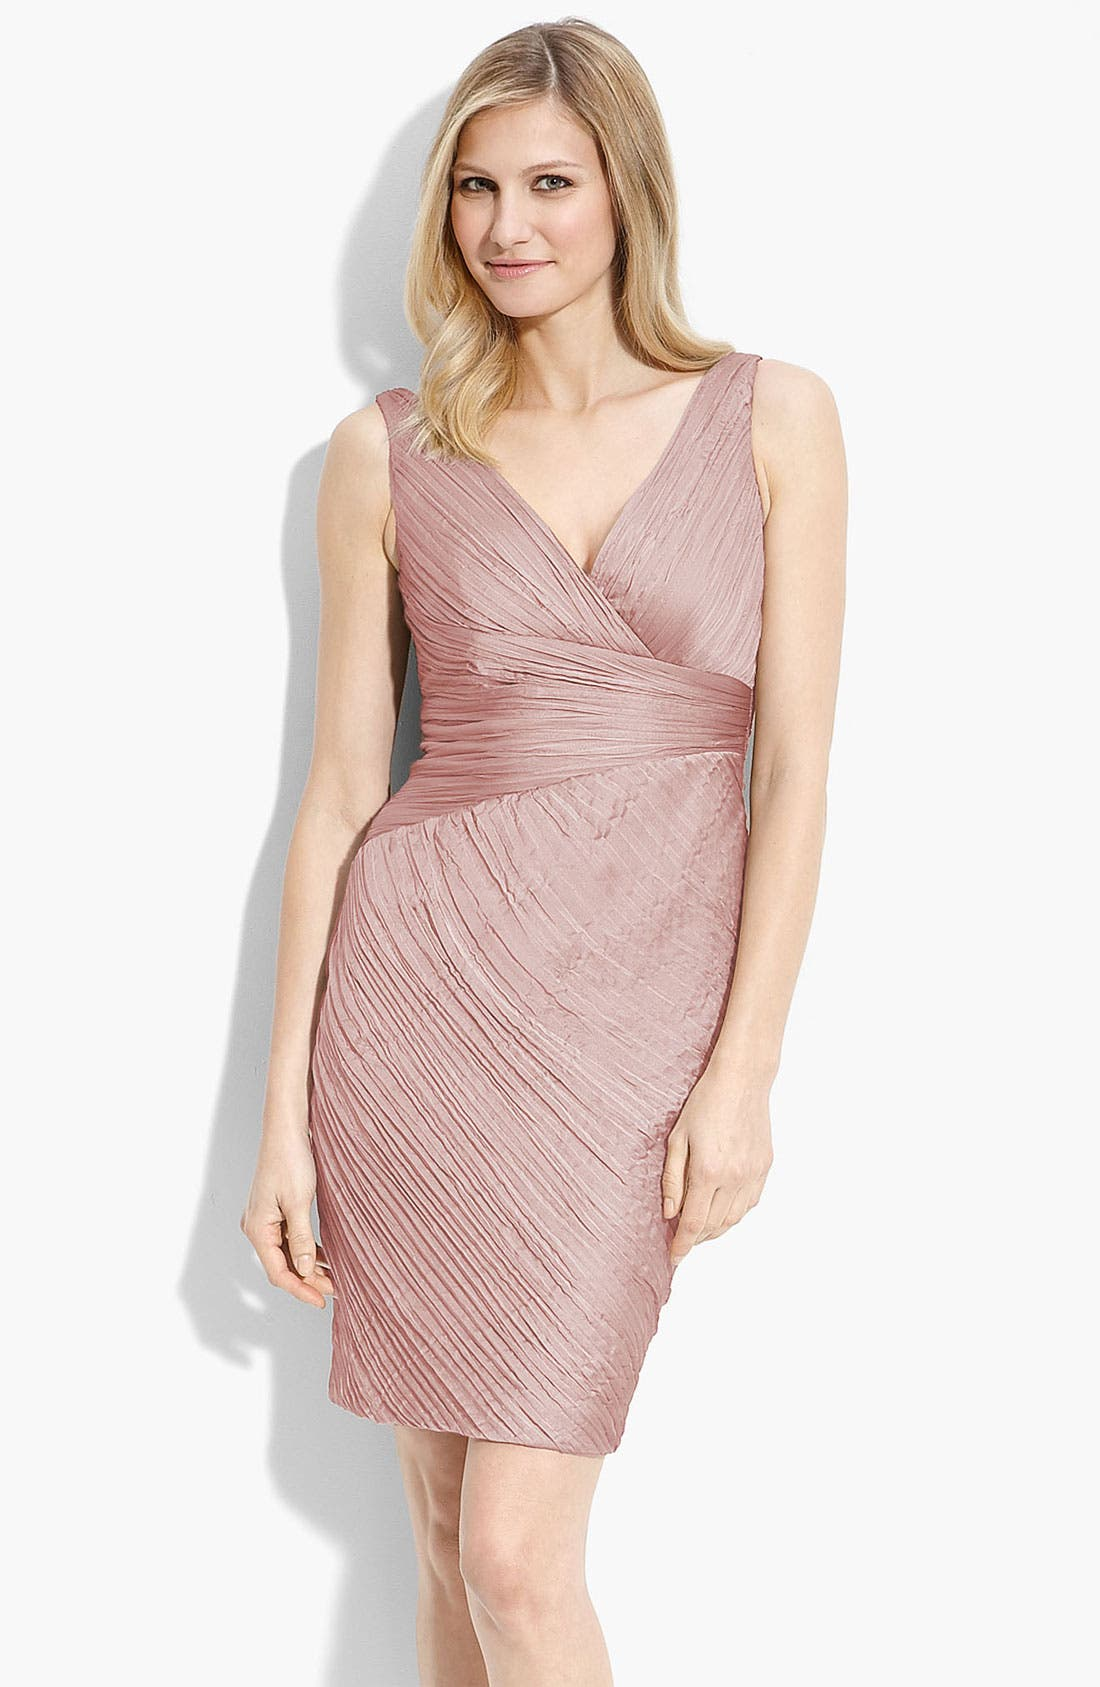 Main Image - ML Monique Lhuillier Bridesmaid Ruched Cationic Chiffon Dress (Nordstrom Exclusive)